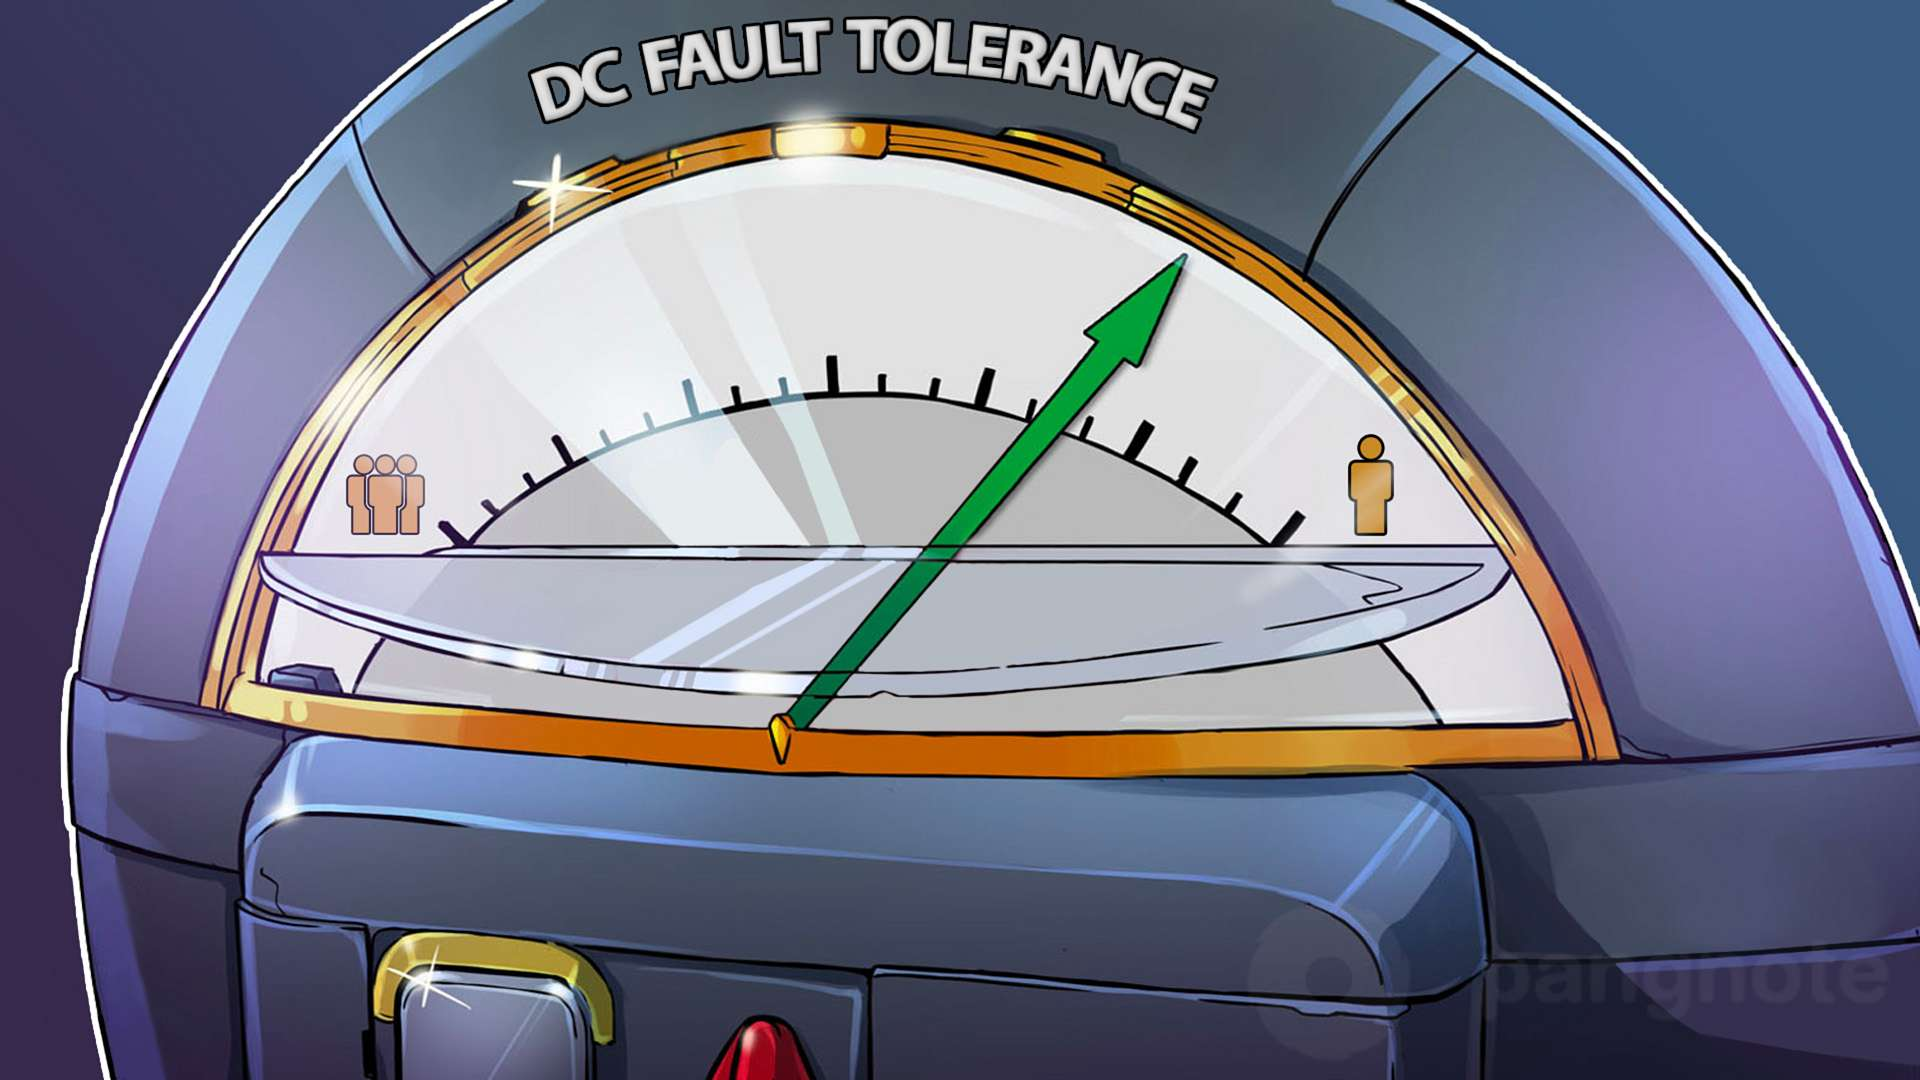 The way to increase DC fault tolerance lies through minimizing the human factor